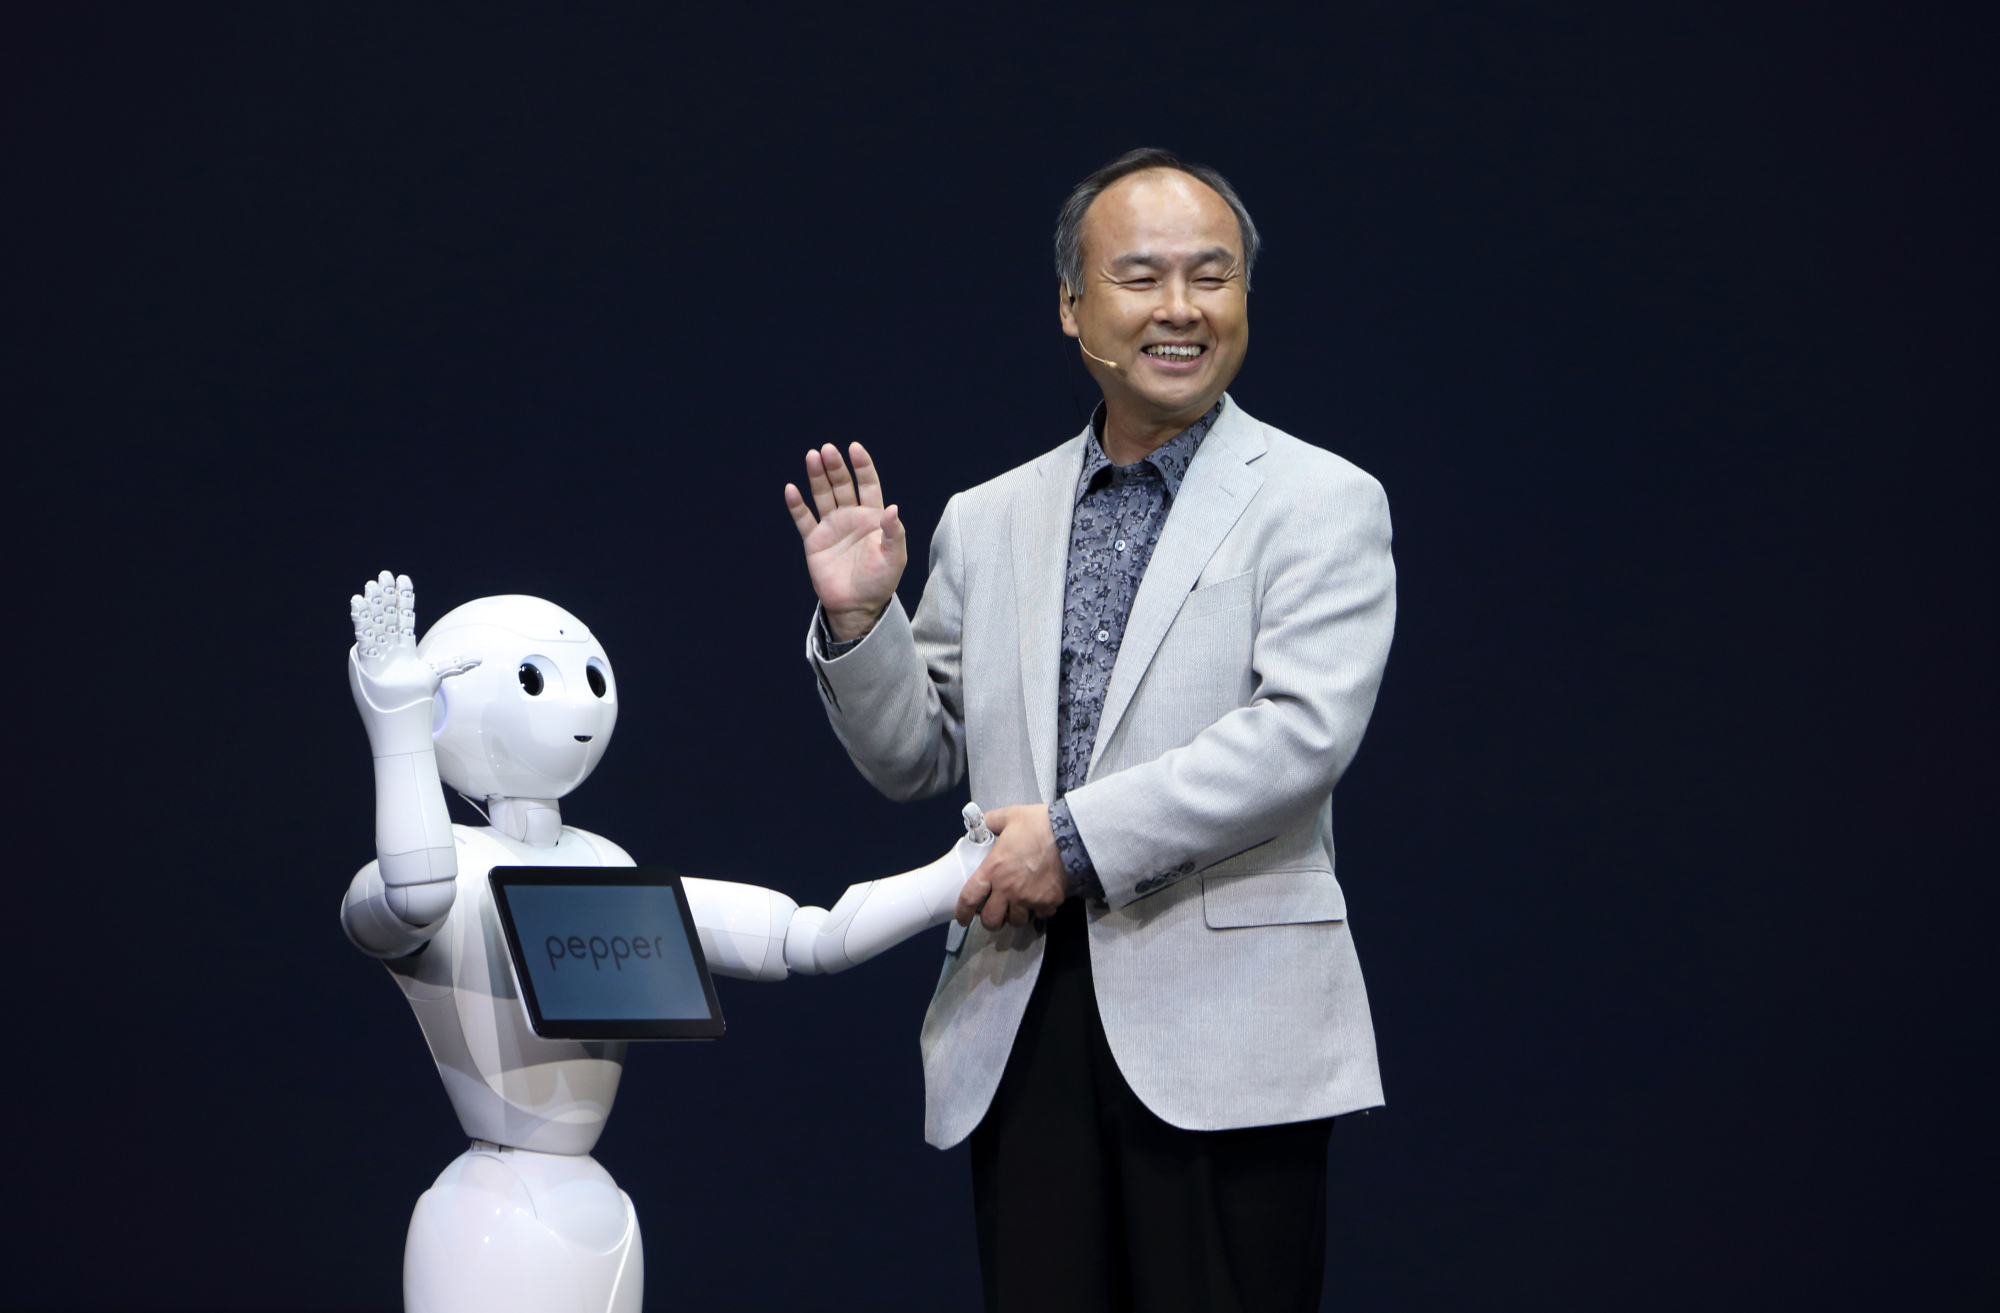 SoftBank Corp. Chairman Masayoshi Son greets the company's Pepper robot during a news conference in Urayasu, Chiba Prefecture, in June 2014. | BLOOMBERG